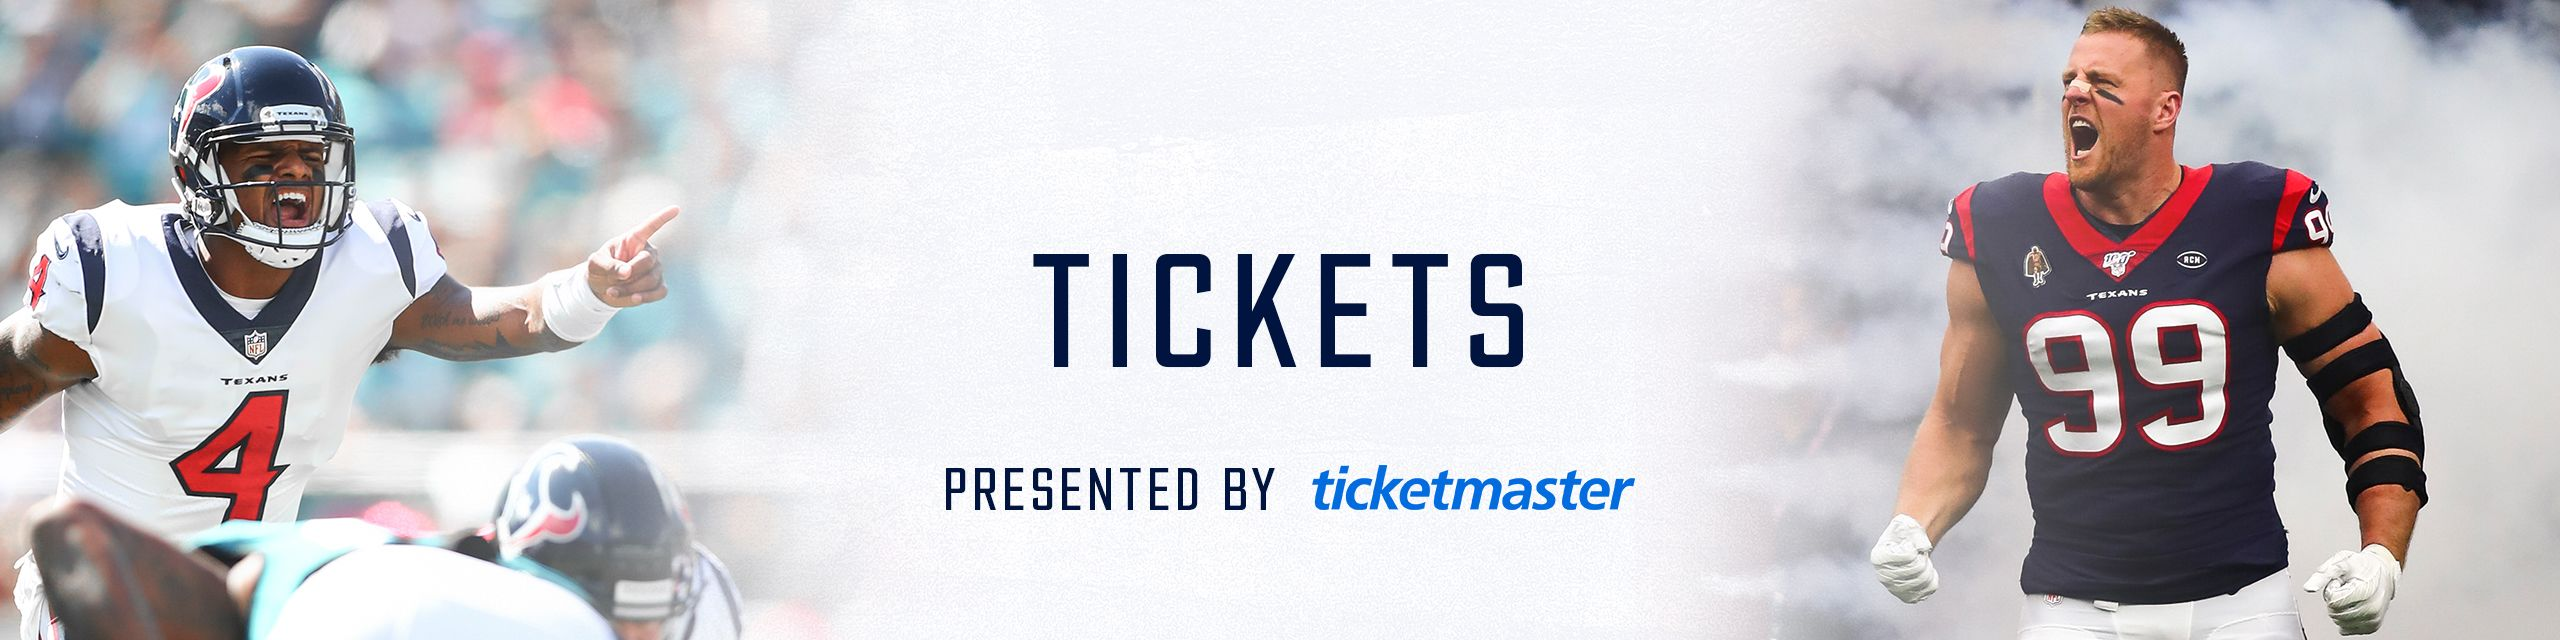 Tickets presented by Ticketmaster